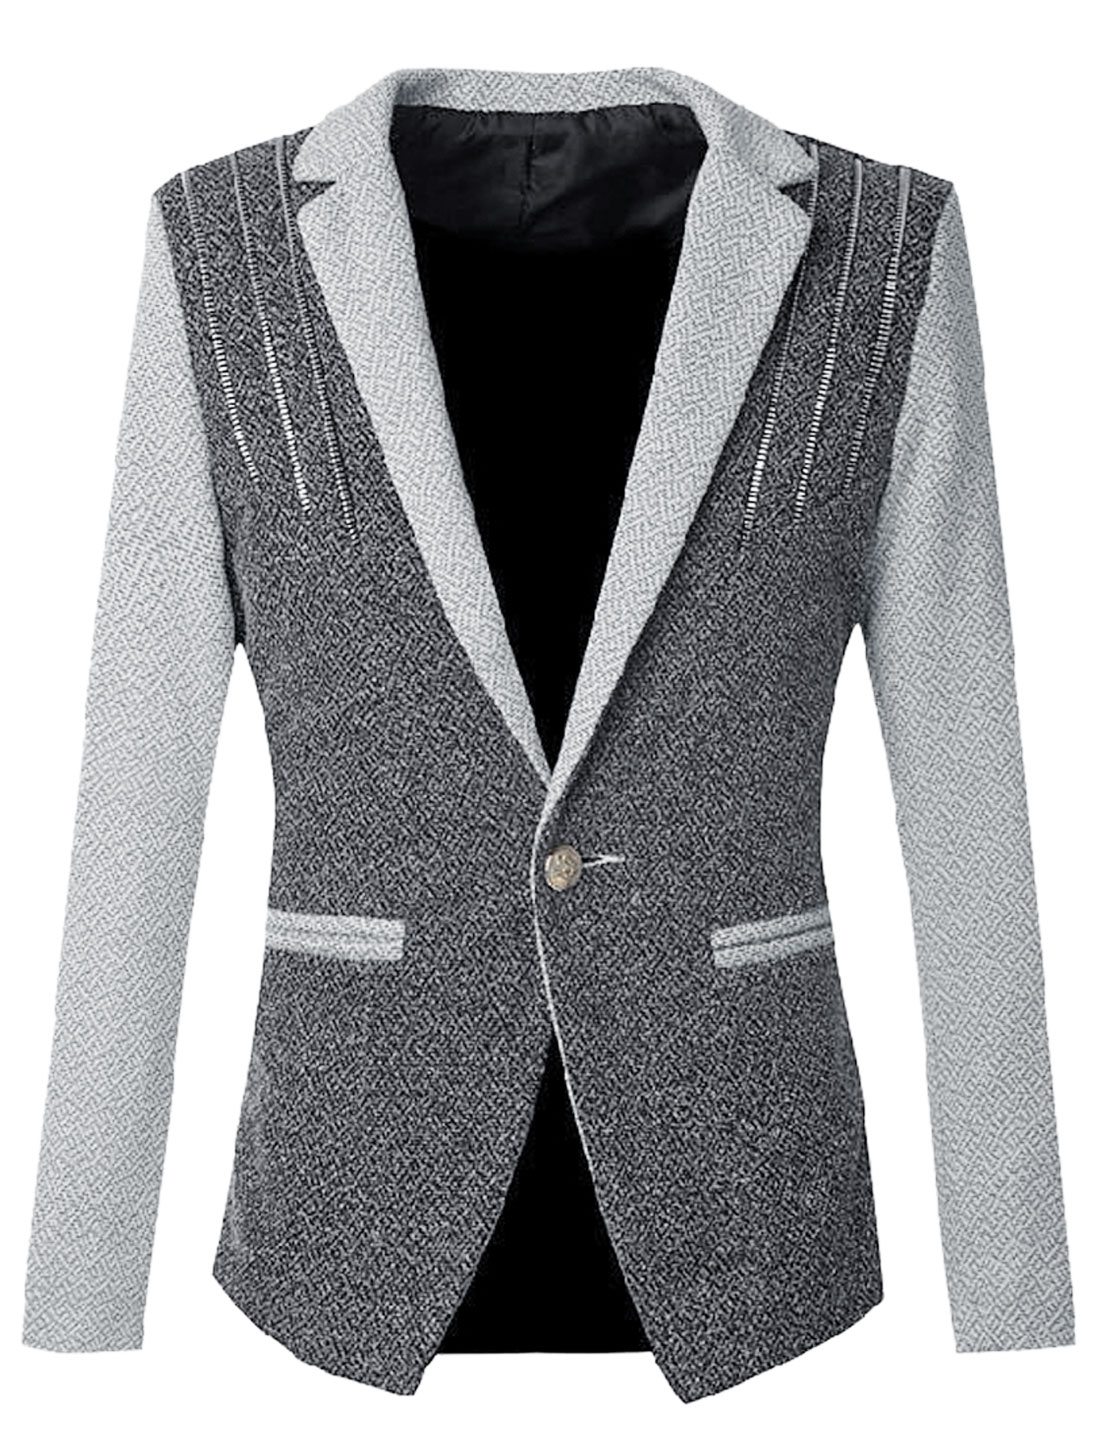 Men Zipper Decor Front Split Back Fashion Blazer Jacket Dark Gray S